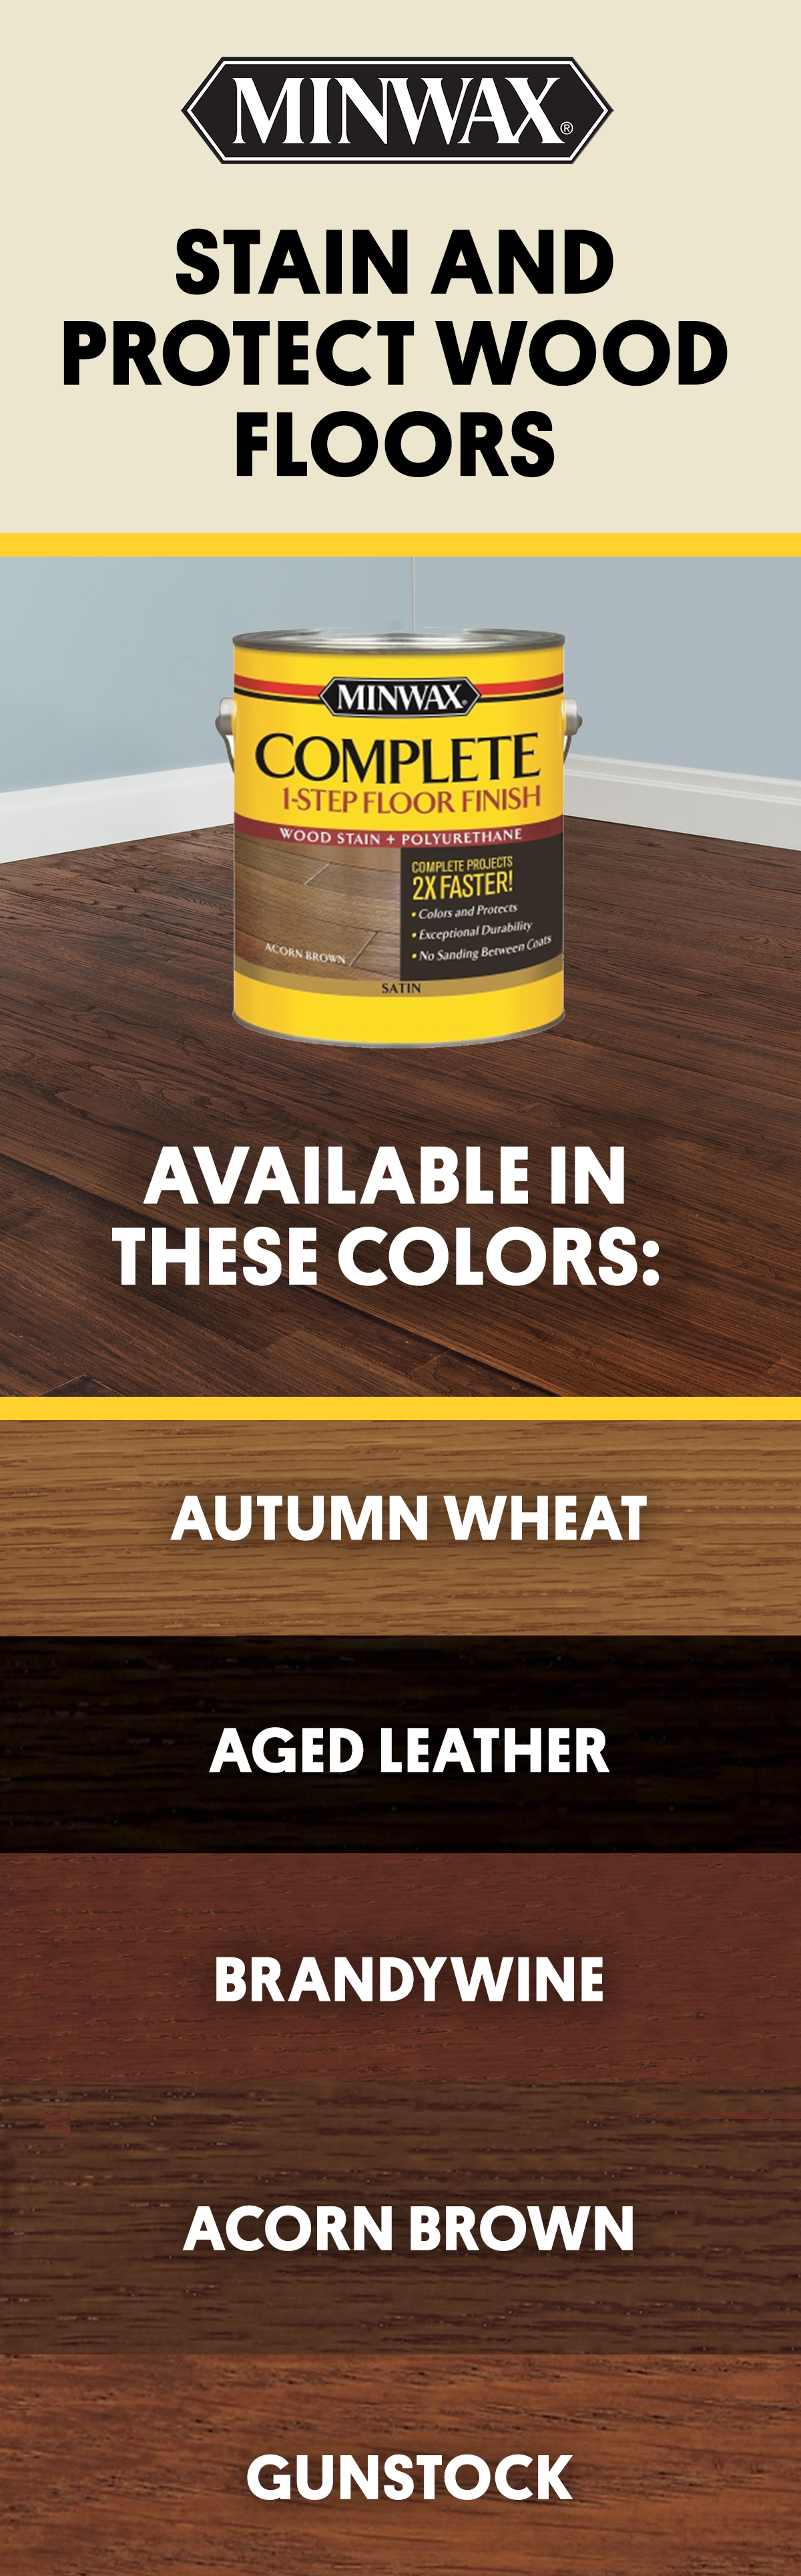 Use Minwax Complete 1 Step Floor Finish To Stain And Protect Your Wood Floors In One Easy Step It Comes Diy Wood Floors Refinish Wood Floors Floor Finishes